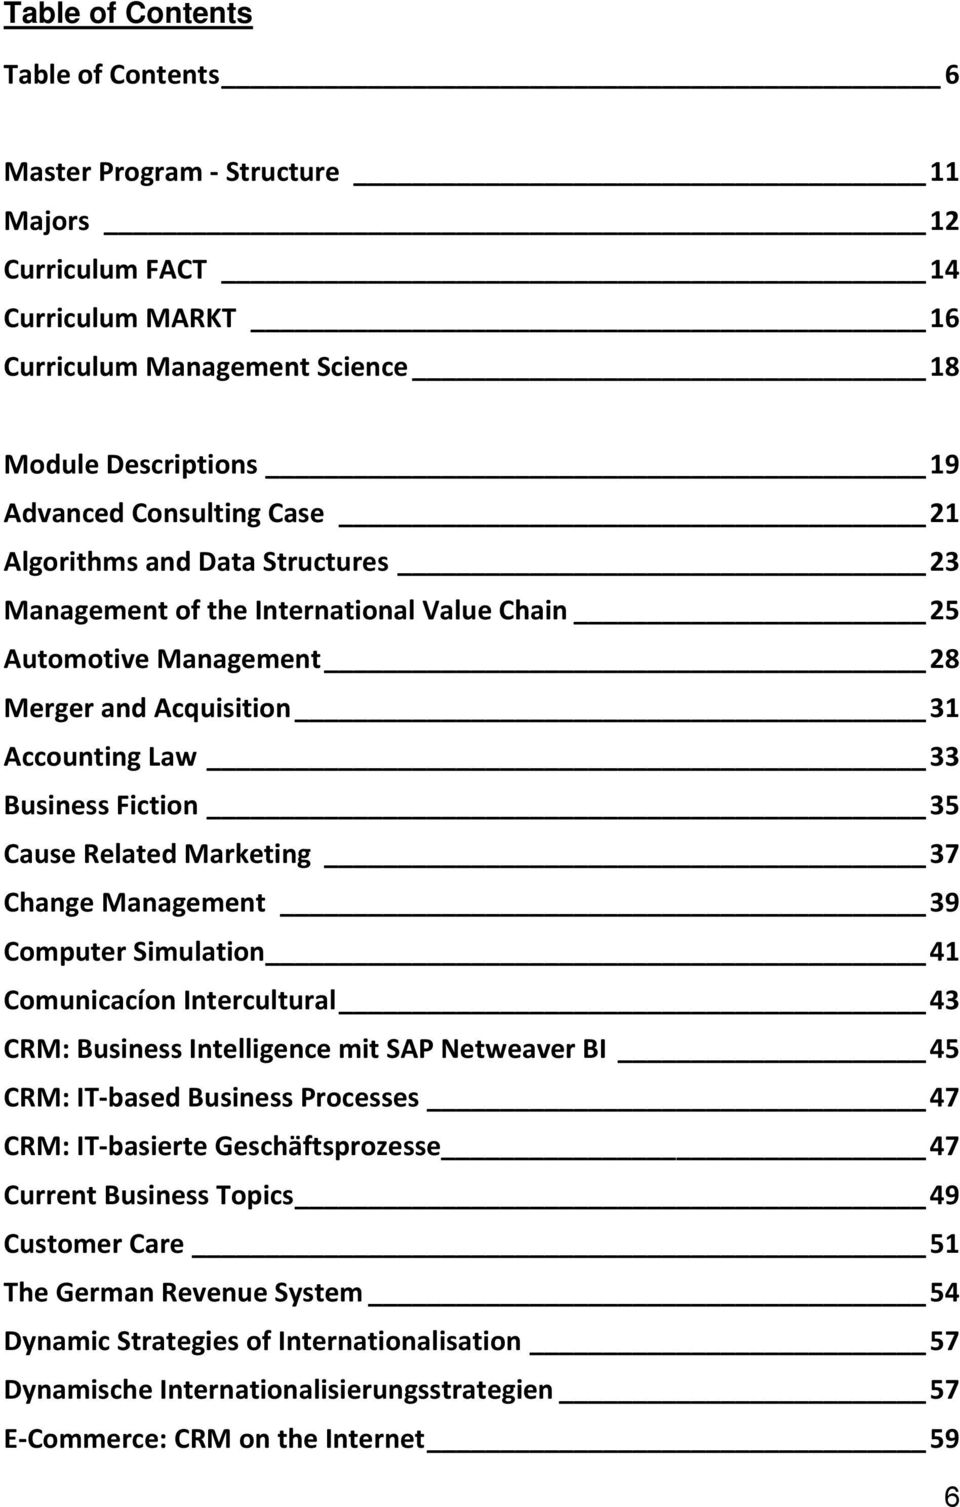 Change Management 39 Computer Simulation 41 Comunicacíon Intercultural 43 CRM: Business Intelligence mit SAP Netweaver BI 45 CRM: IT based Business Processes 47 CRM: IT basierte Geschäftsprozesse 47